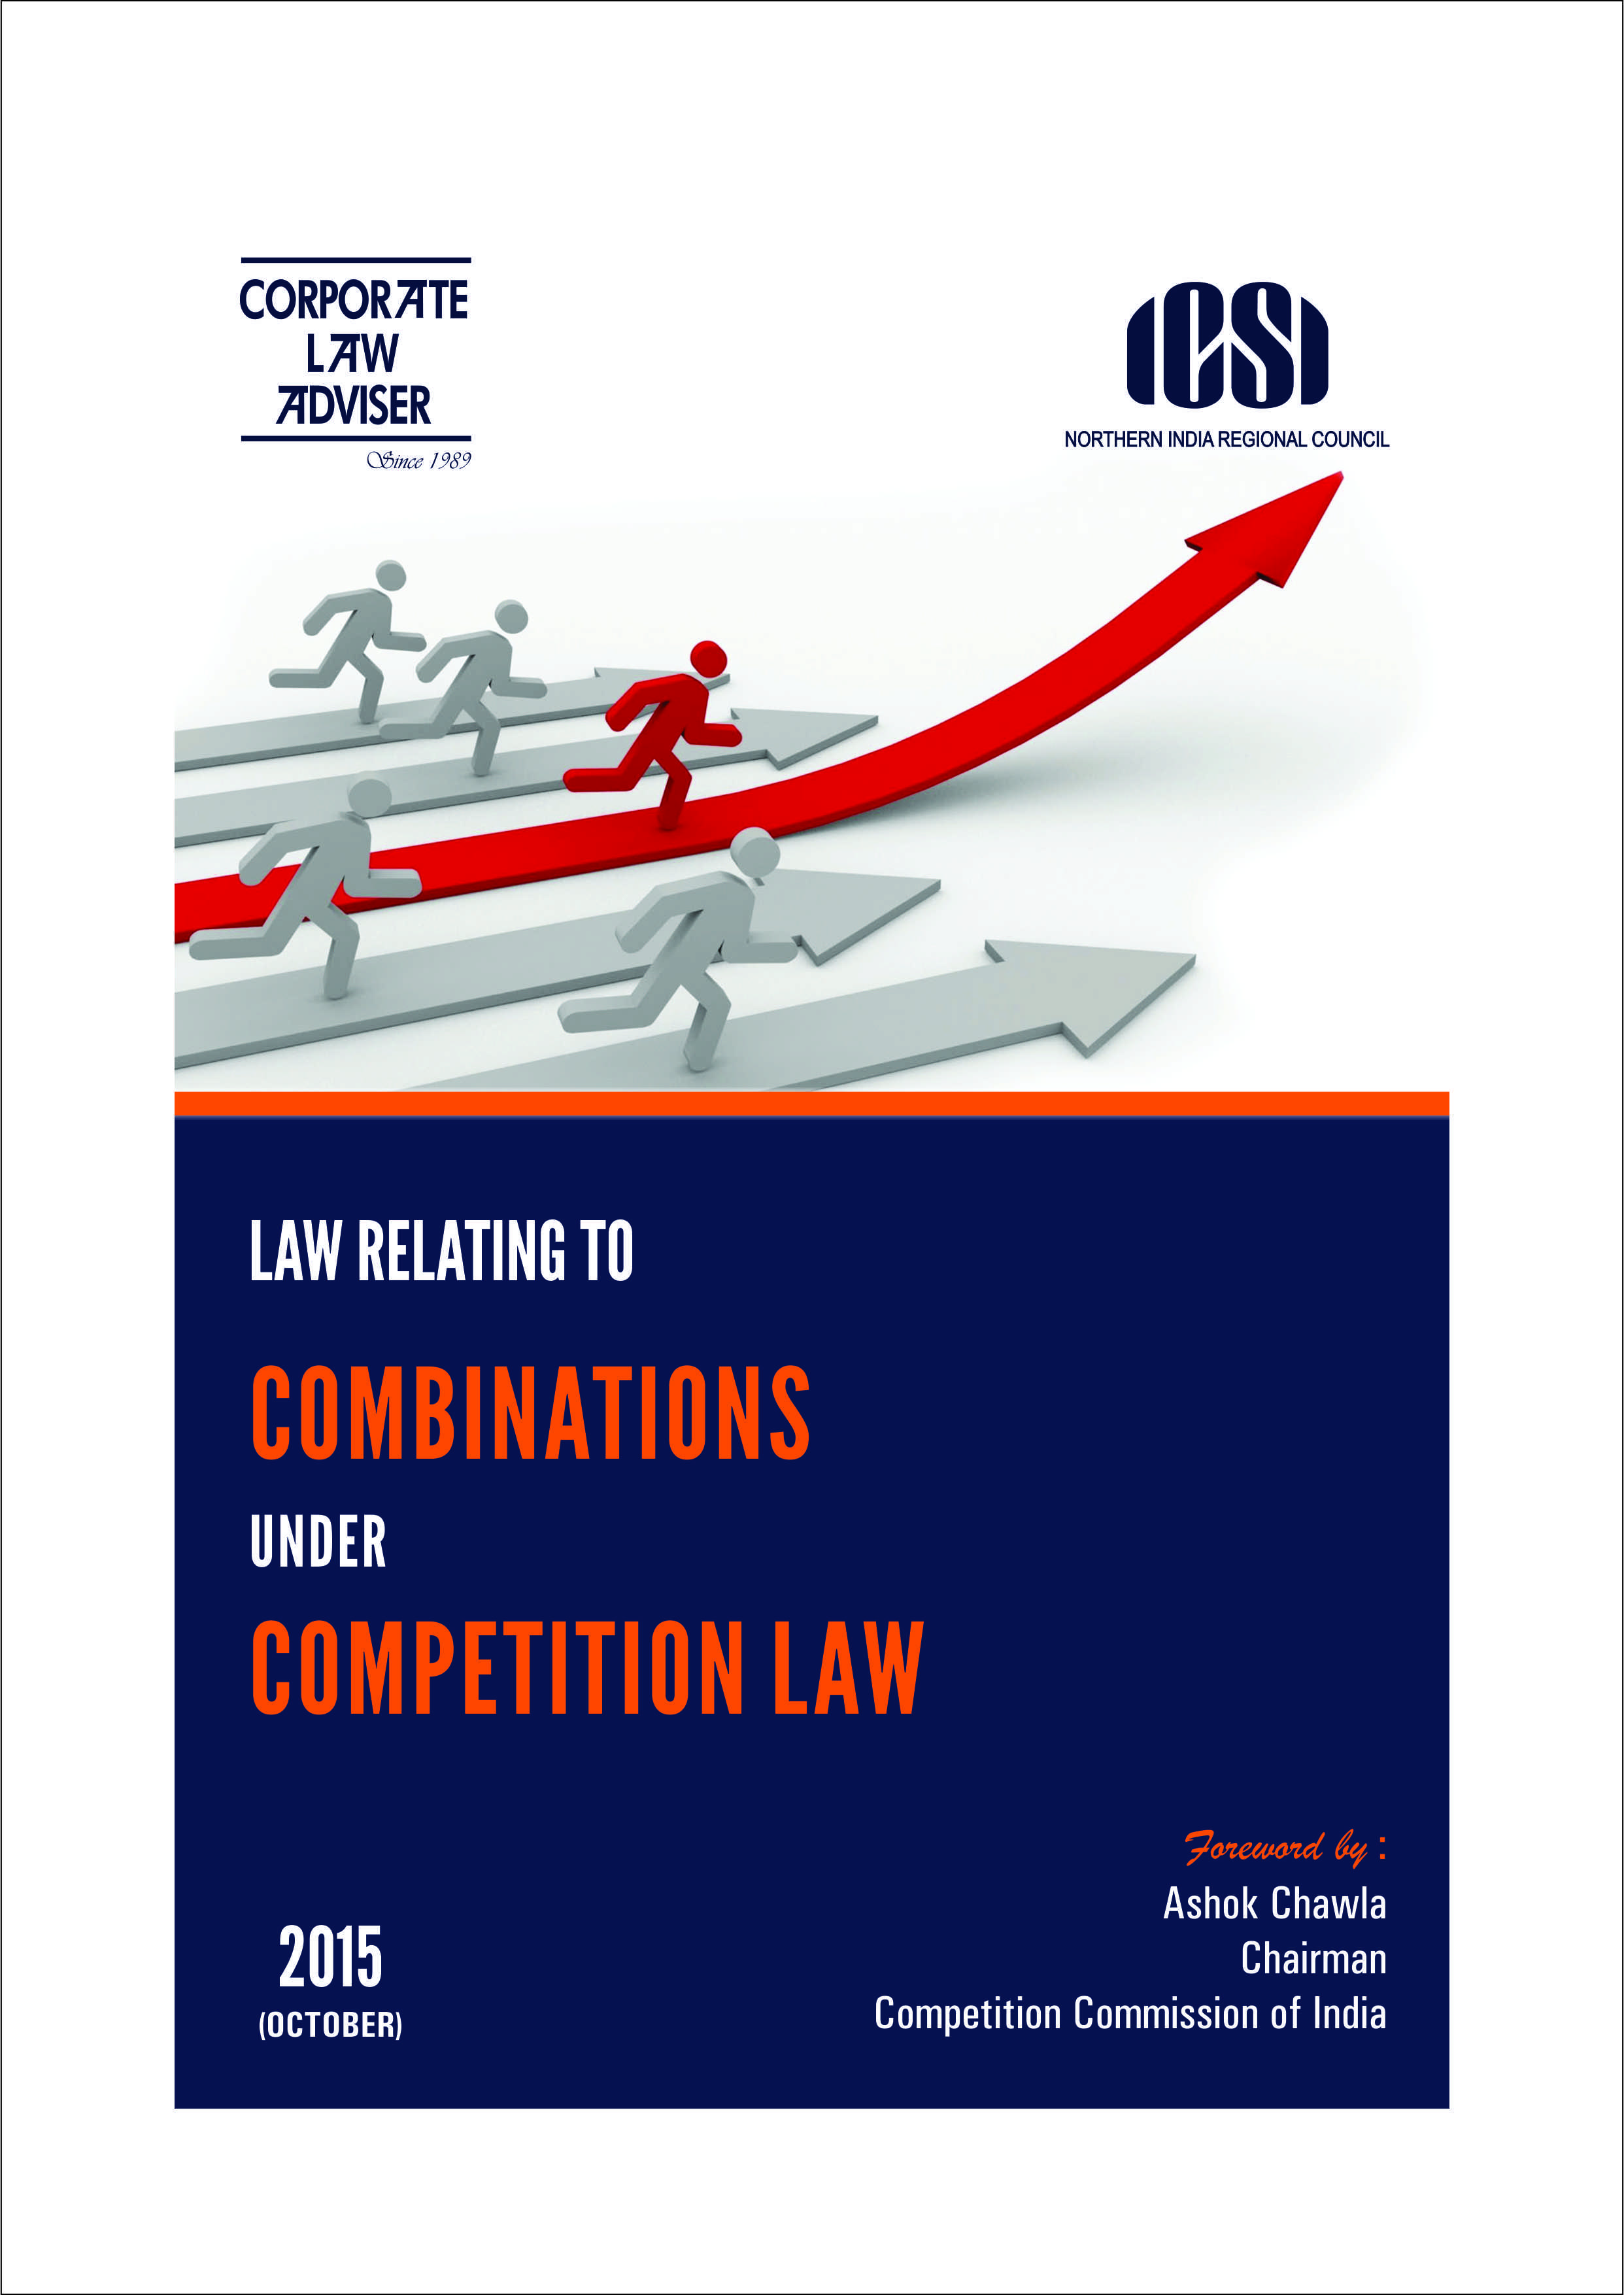 LAW RELATING TO COMBINATIONS UNDER COMPETITION LAW 2015